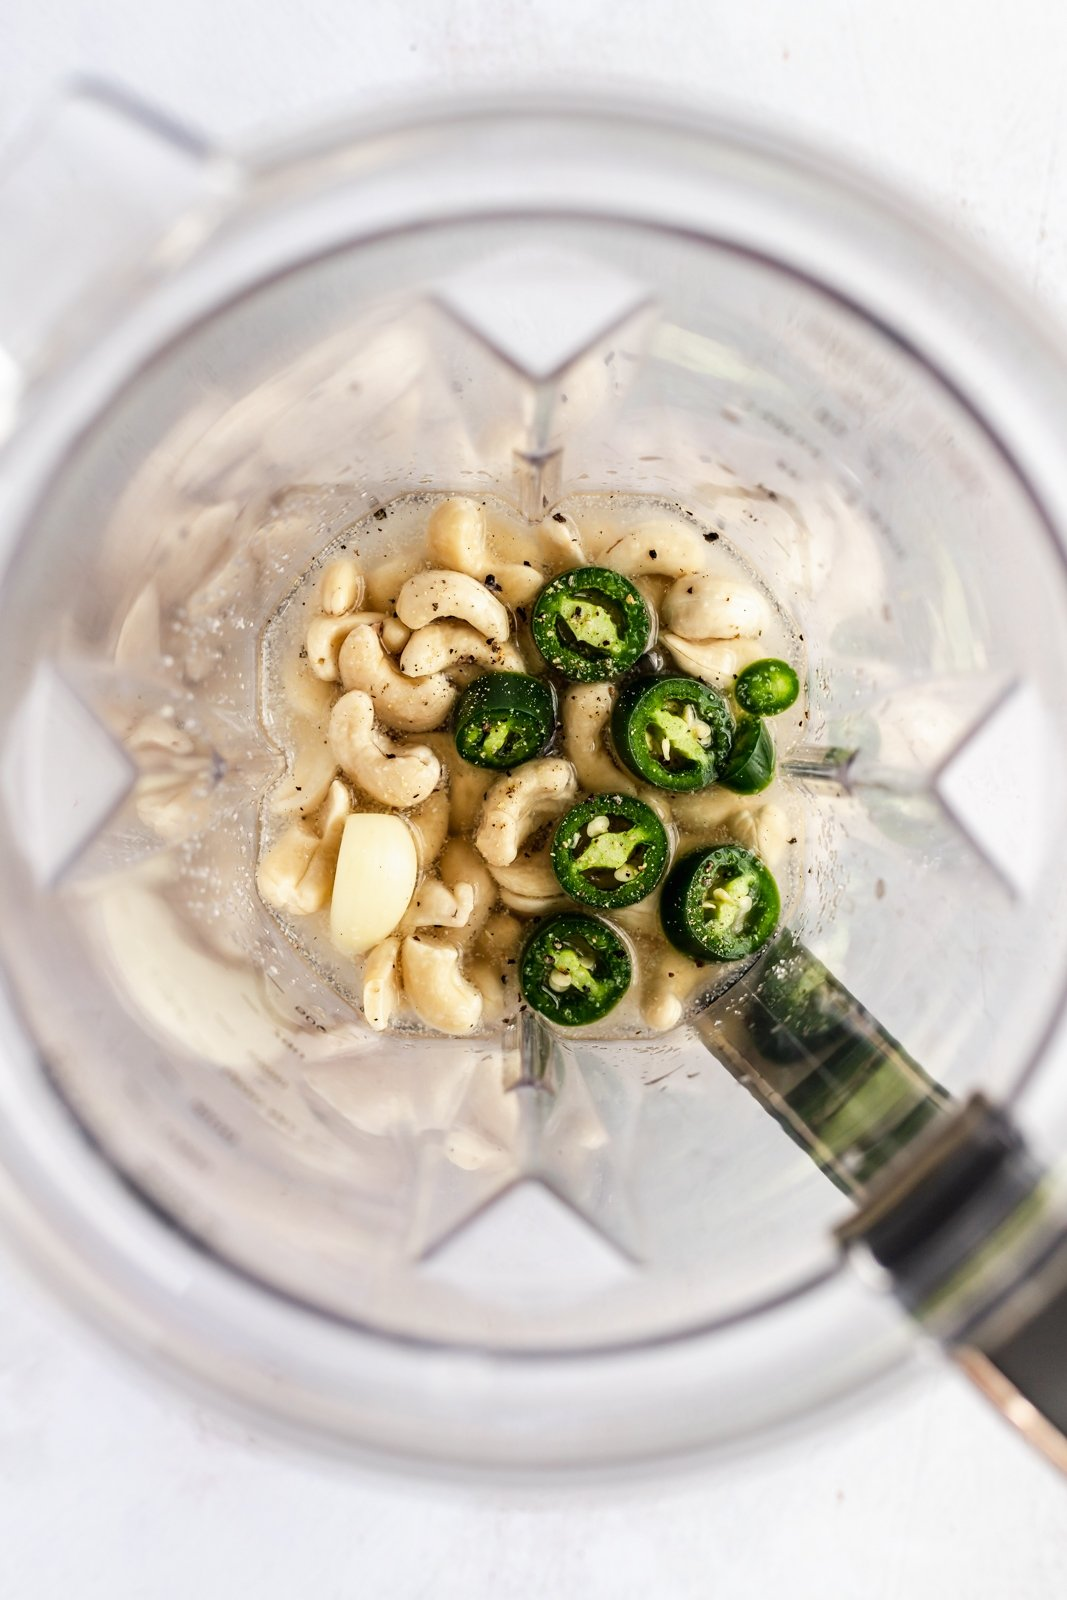 cashews and jalapeño slices in a blender